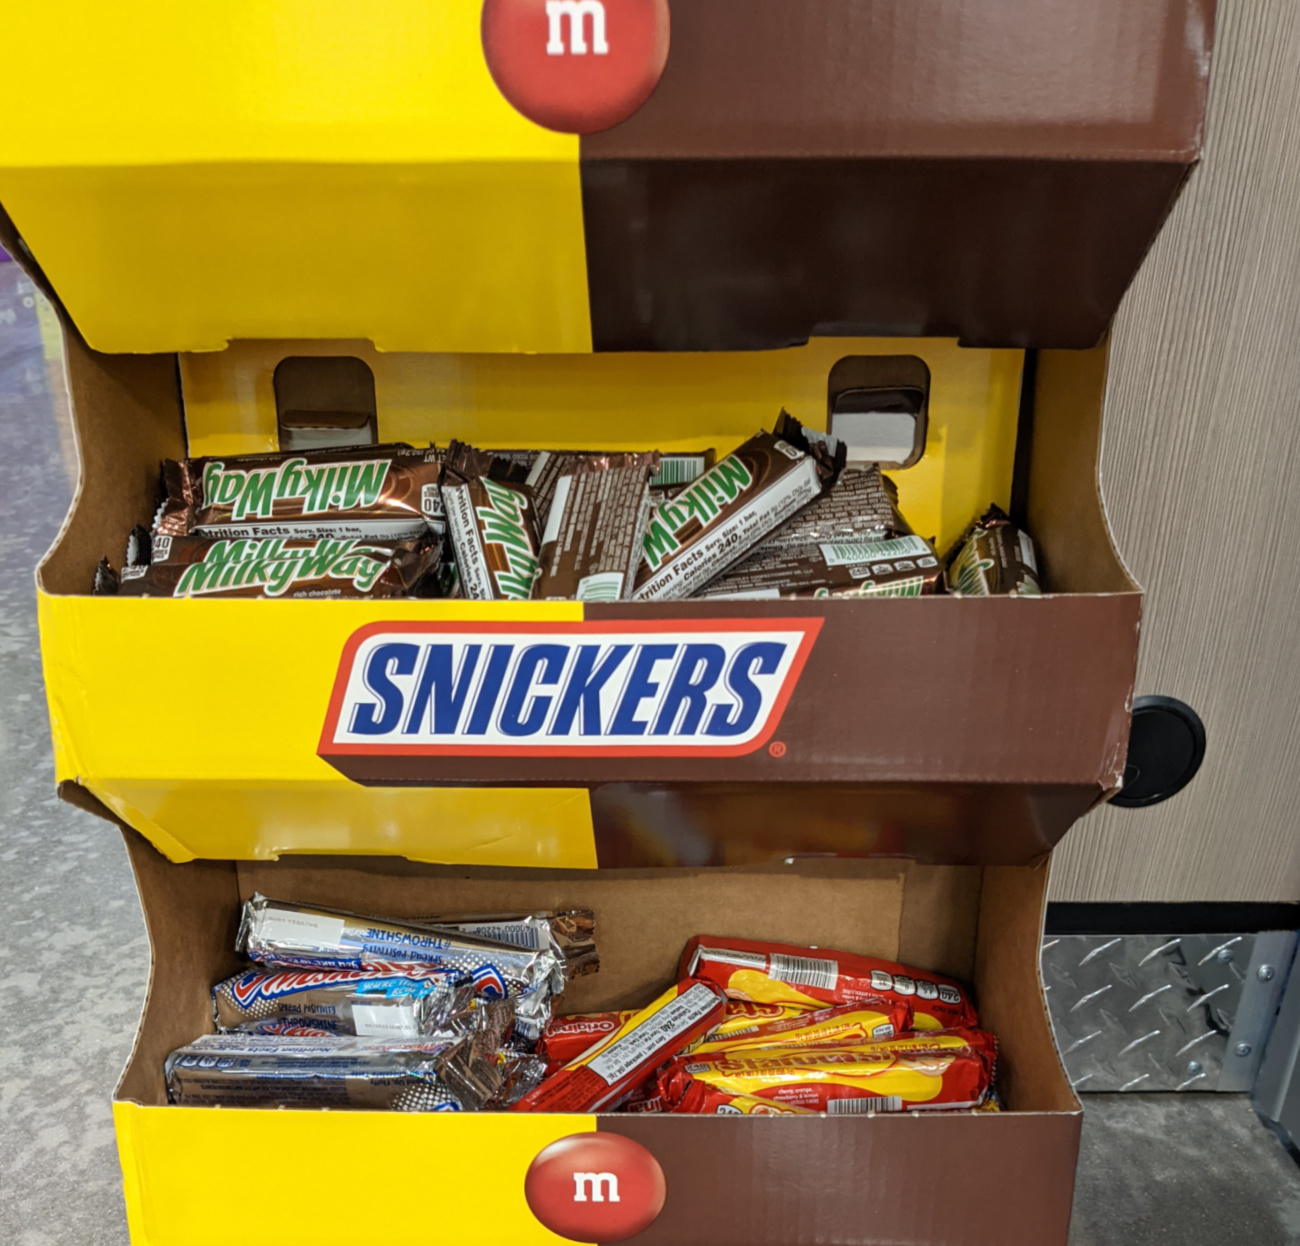 Snickers Bars As Low As $1.25 At Kroger (Plus Cheap M&M's Chocolates)